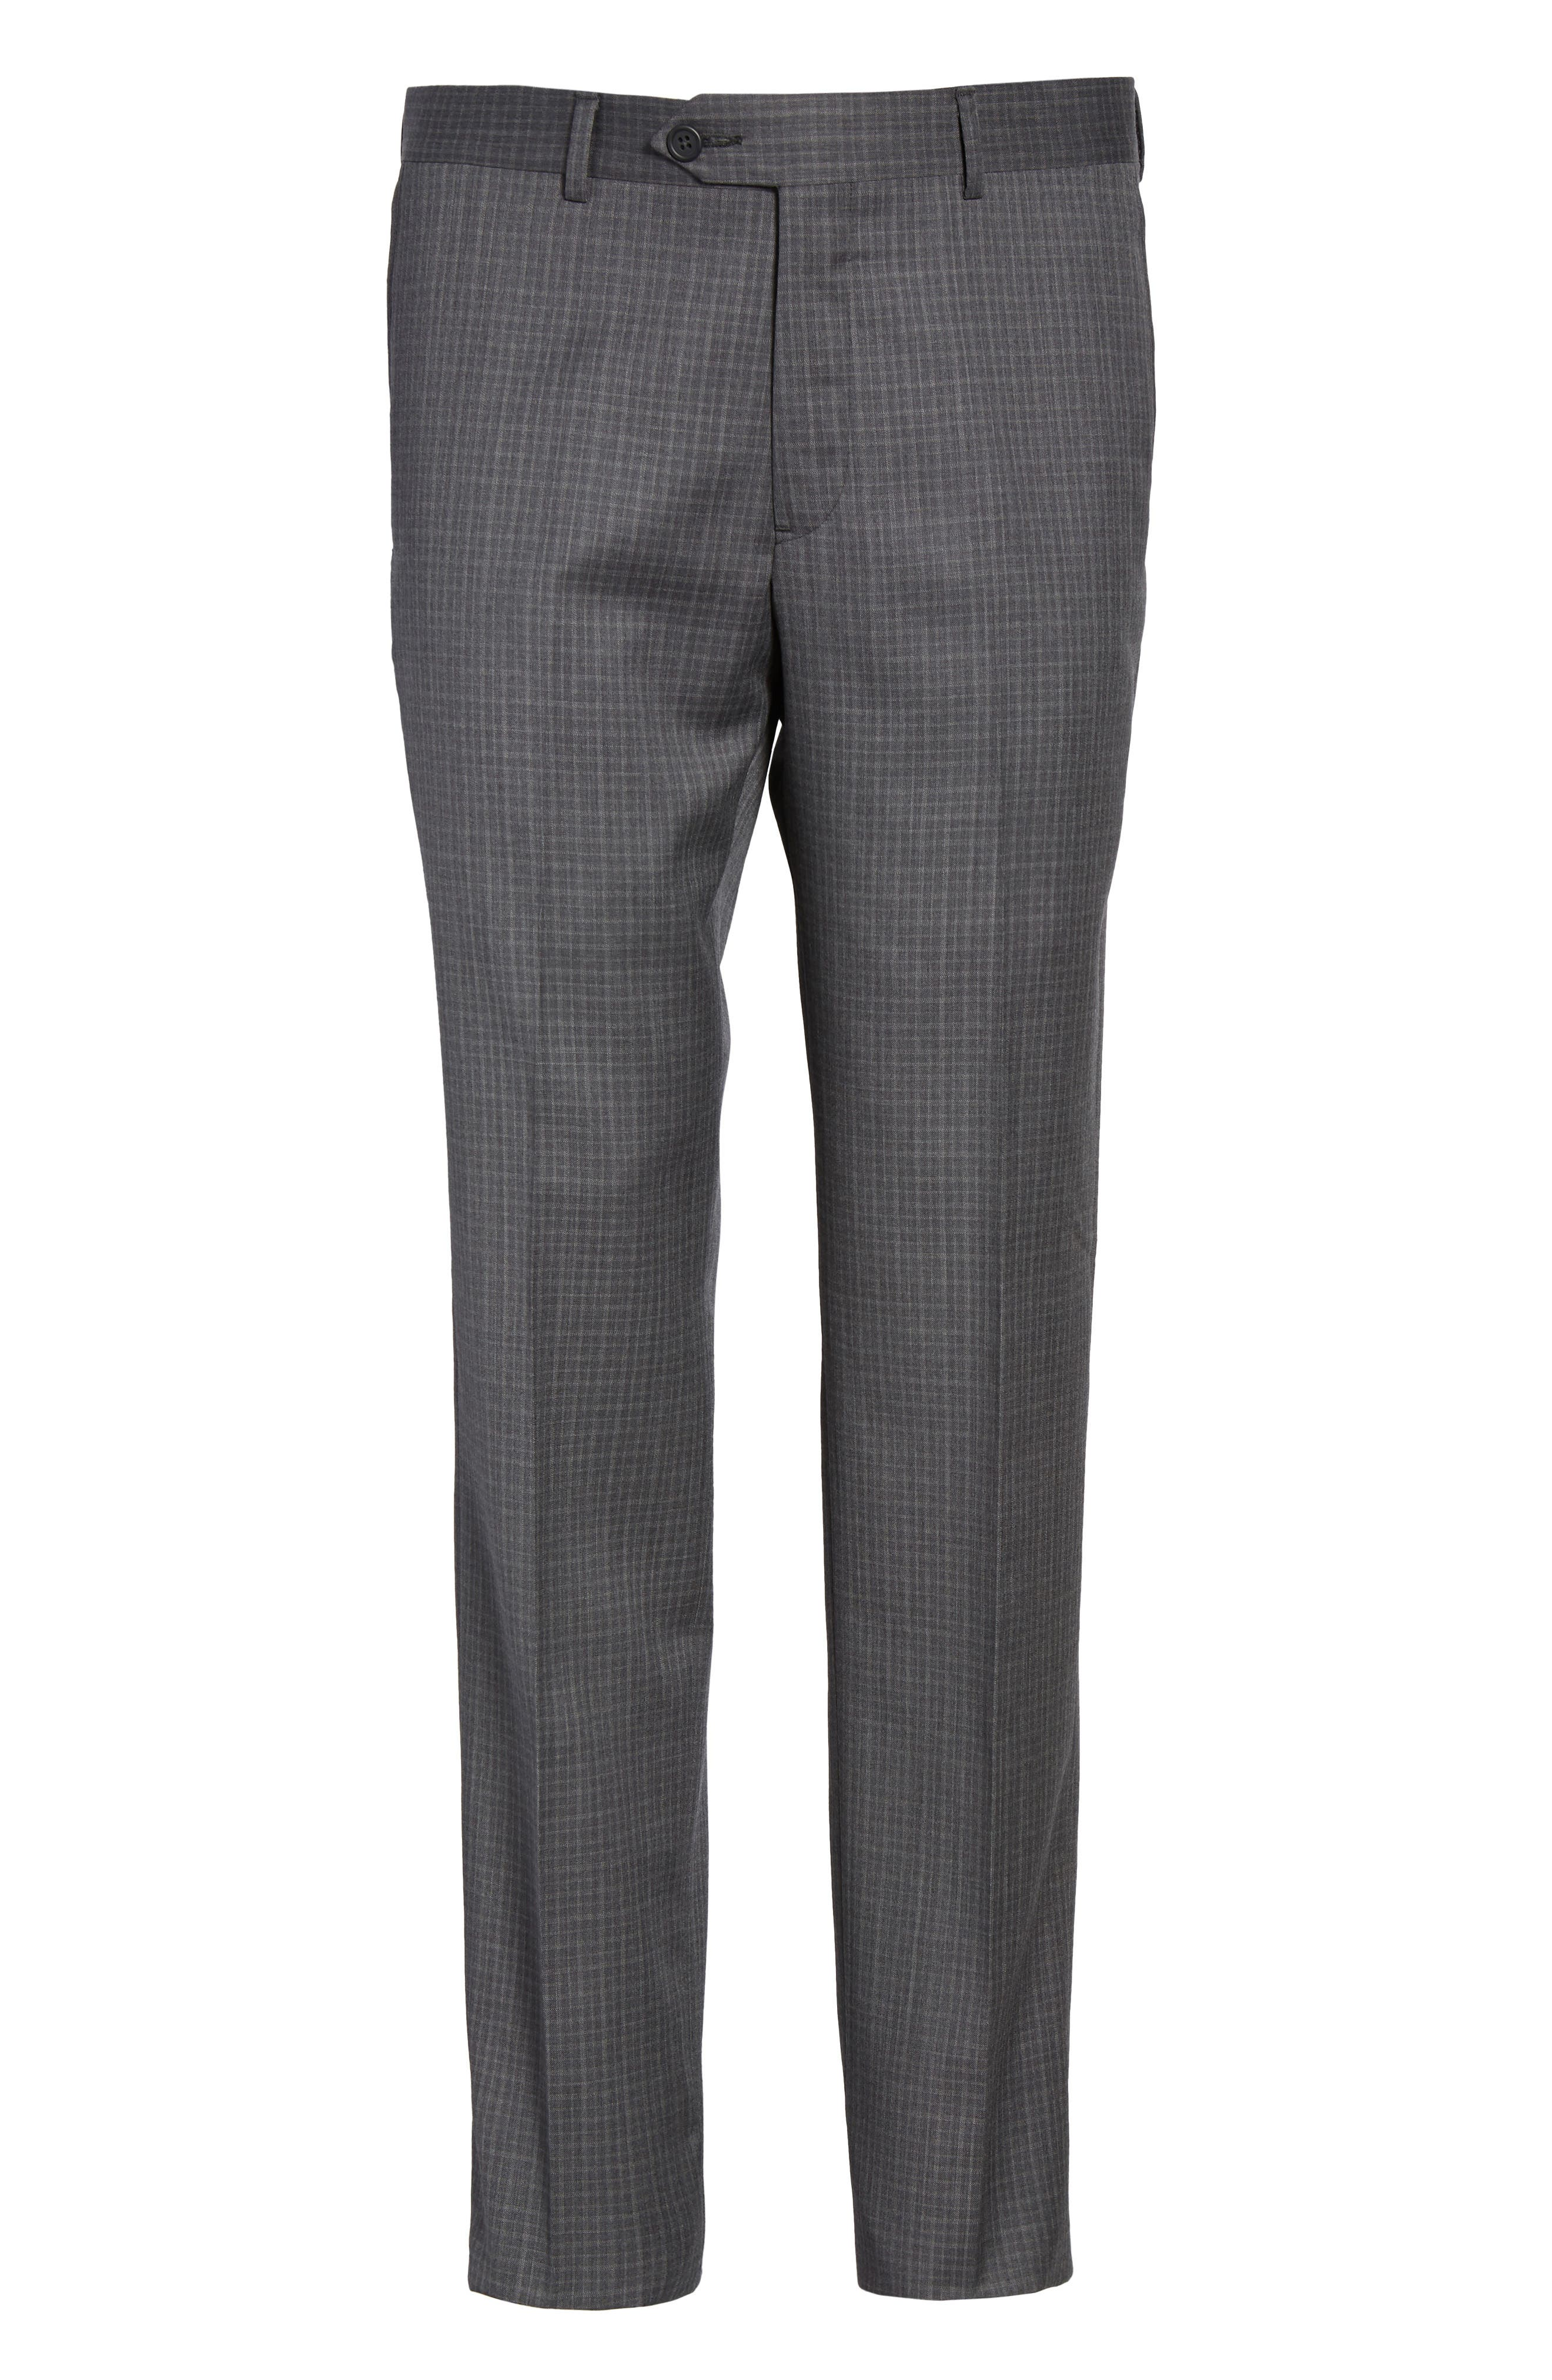 Flat Front Wool Trousers,                             Alternate thumbnail 6, color,                             099